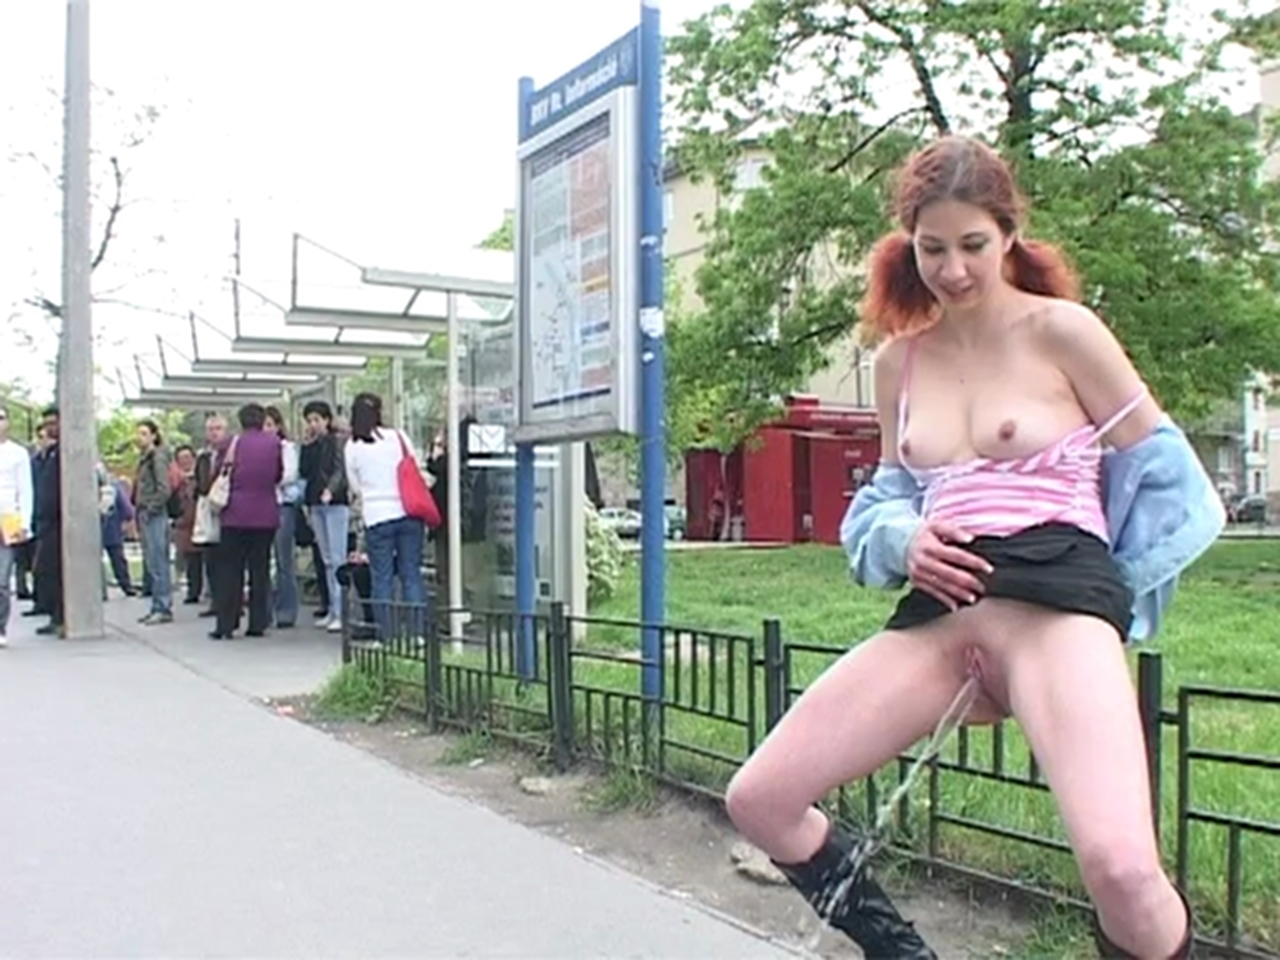 Xxx photos girl hd public